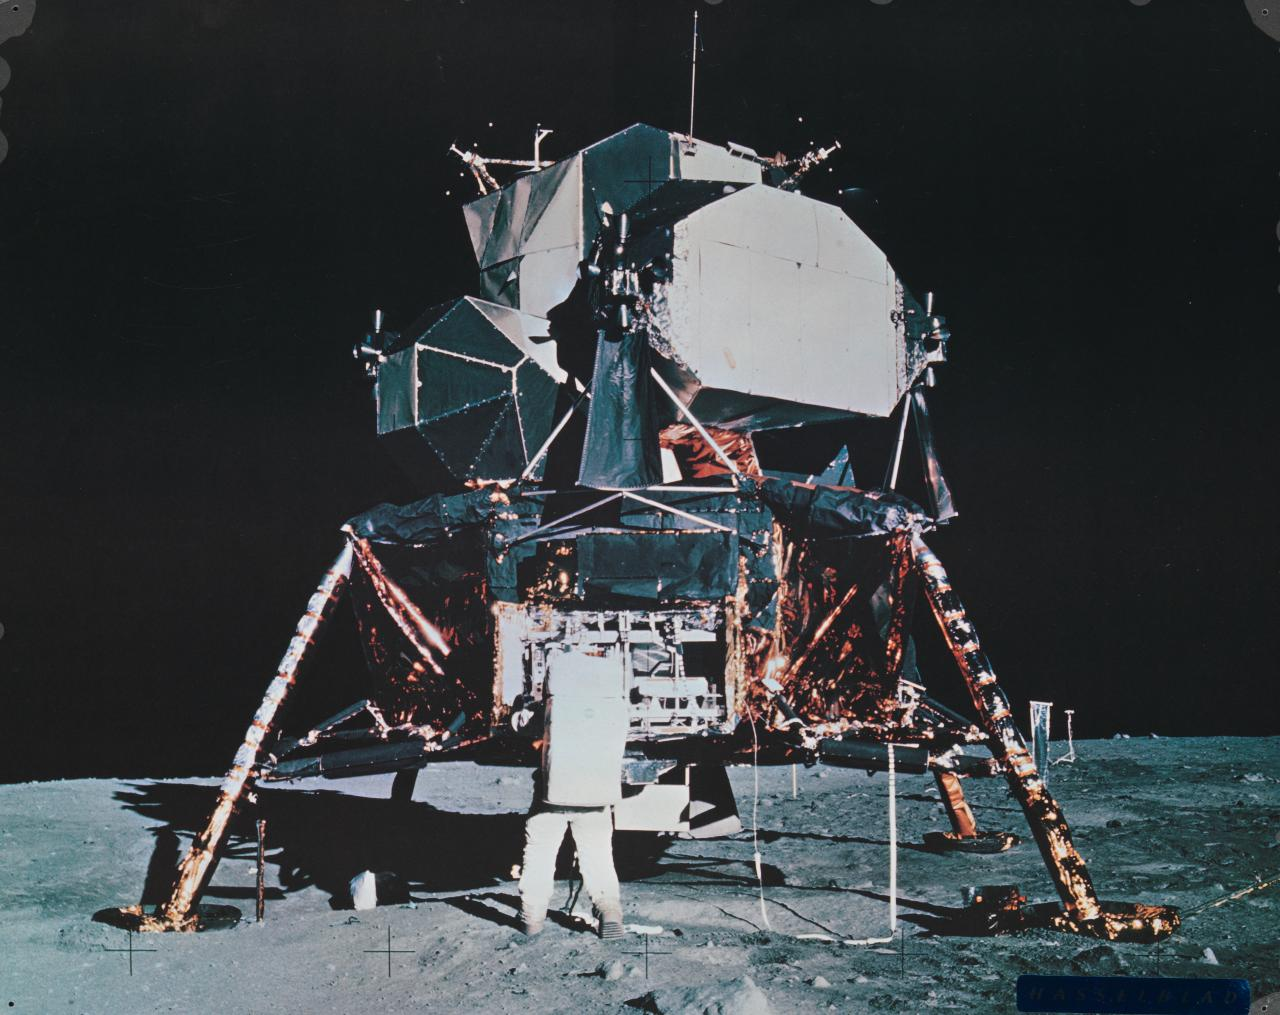 Aldrin and lunar module on moon